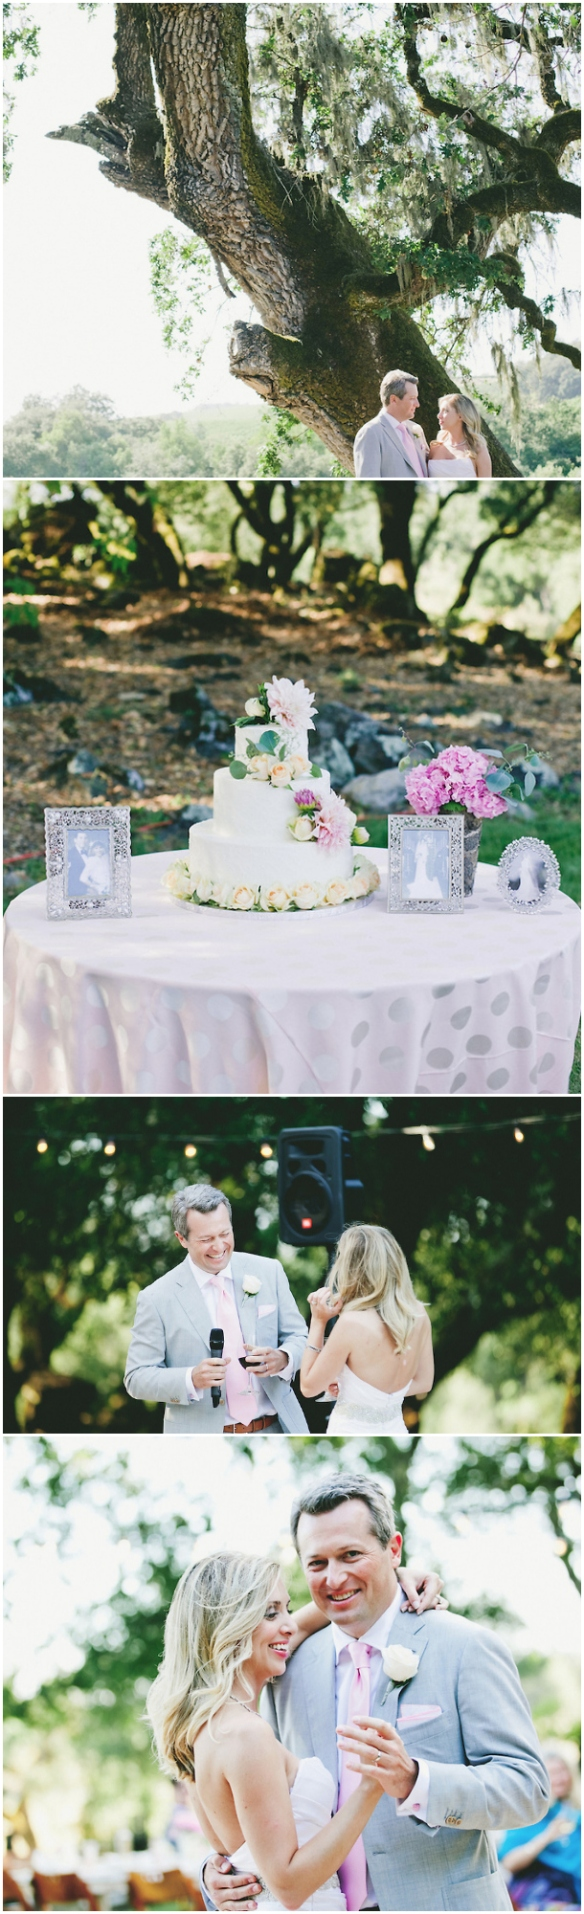 Styling by Off The Beaten Path Weddings, Photo by onelove photography